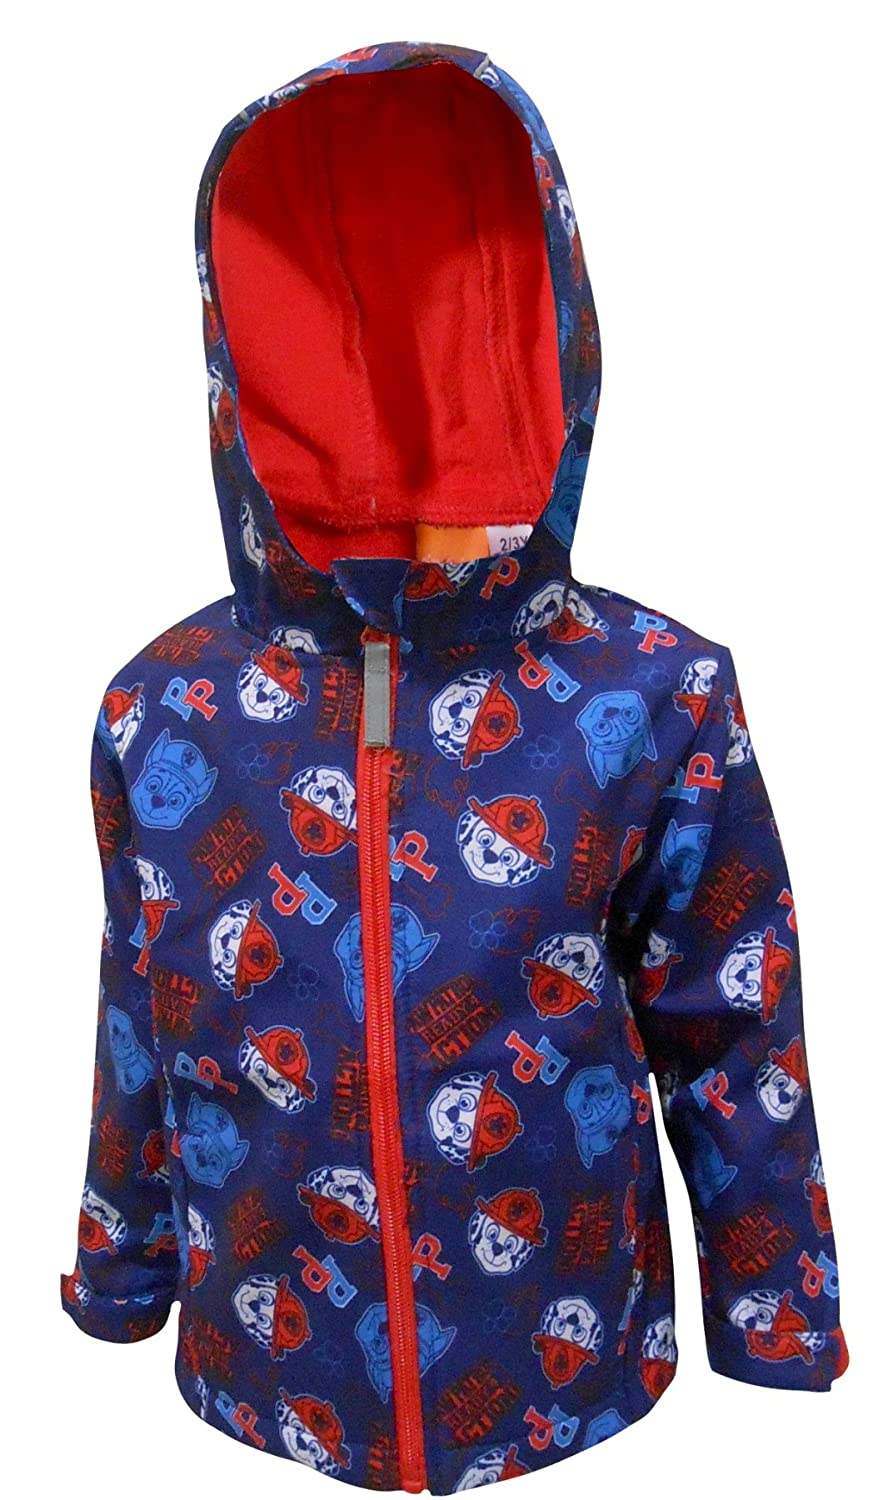 Boys Paw Patrol Hooded Jacket Kids Zipped Fleece Coat 724